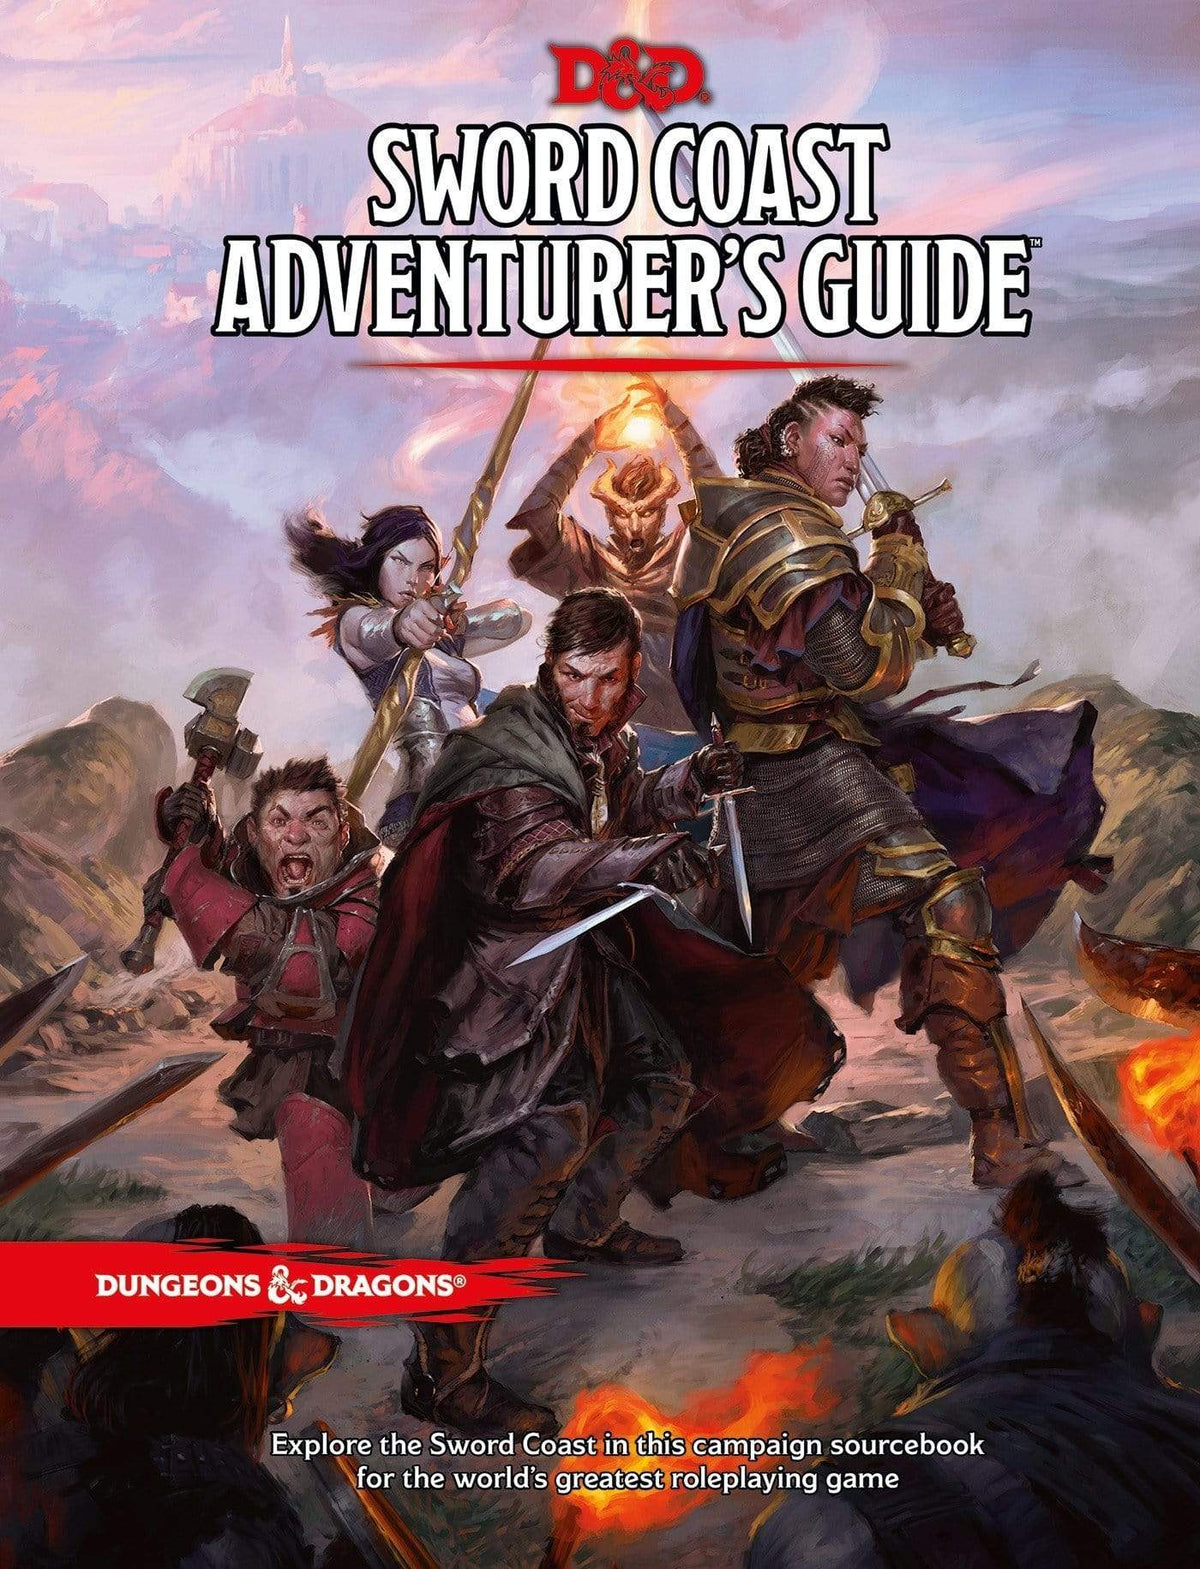 D&D: Sword Coast Adventurer's Guide Wizards of the Coast Board Games